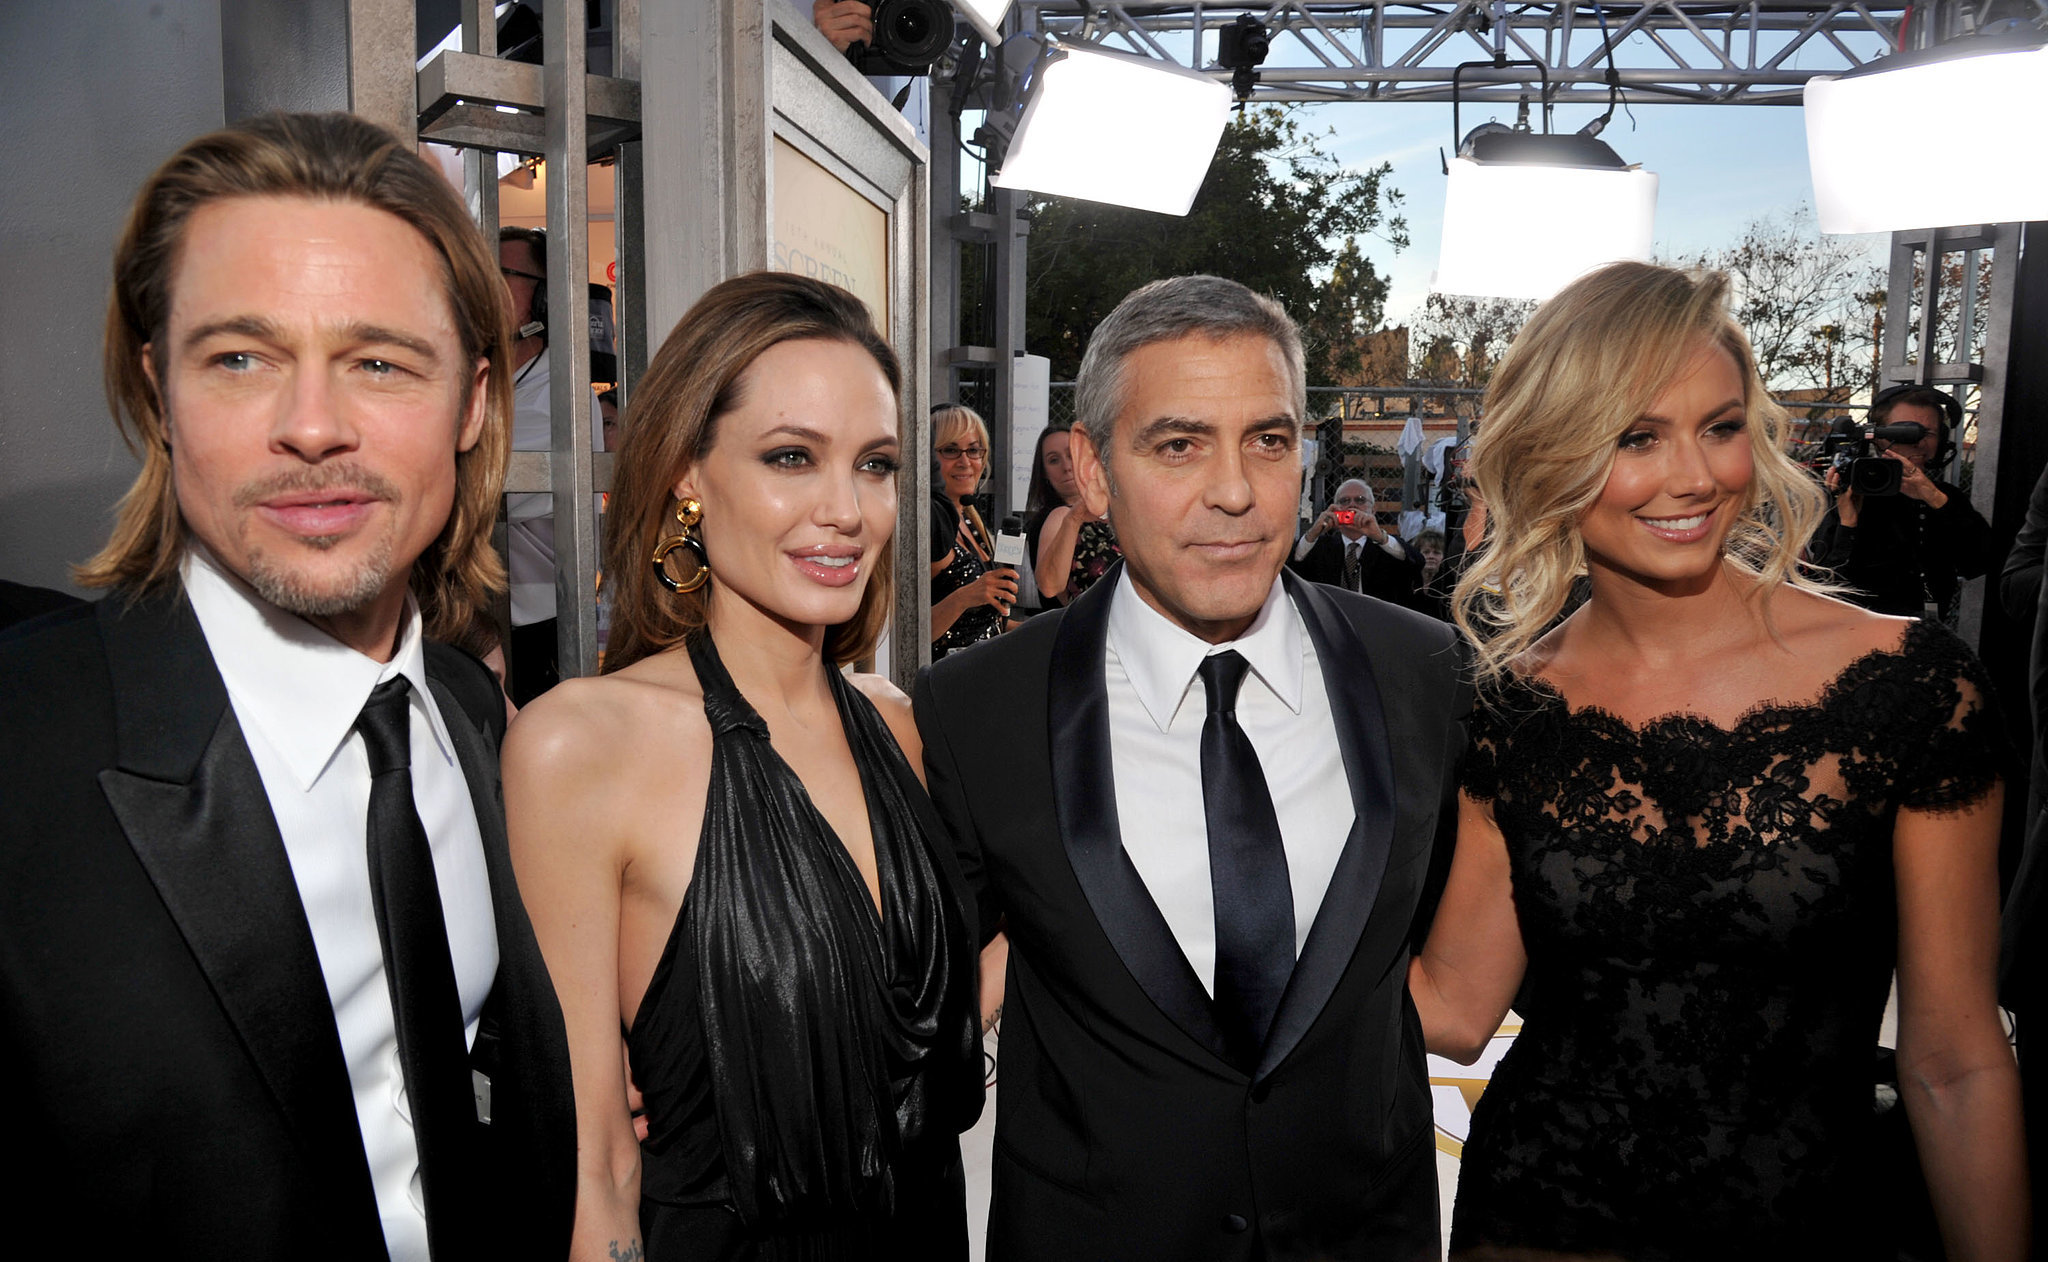 Brad Pitt, Angelina Jolie, George Clooney, and Stacy Keibler made a double date out of the award show in LA in 2012.